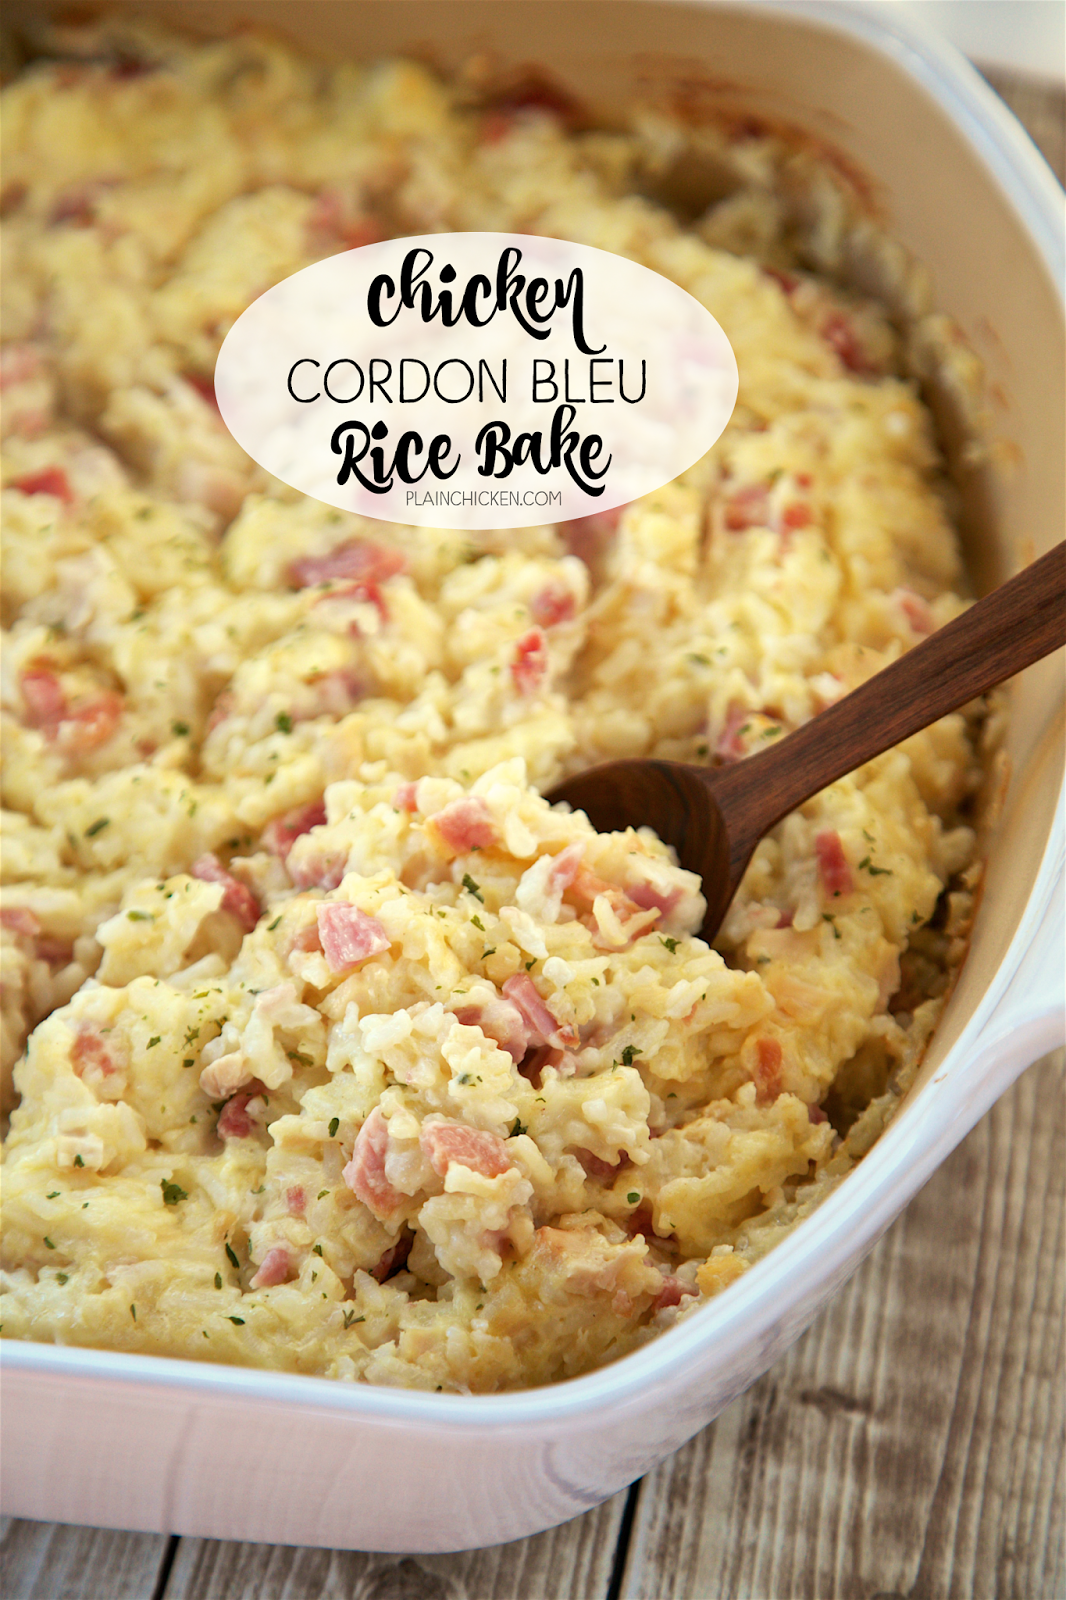 Chicken Cordon Bleu Rice Bake - Chicken, ham, swiss cheese, sour cream, chicken soup and rice. This was SOOO delicious. We ate this for dinner and leftover for lunch the next day. Great way to use up leftover holiday ham. Everyone cleaned their plate!